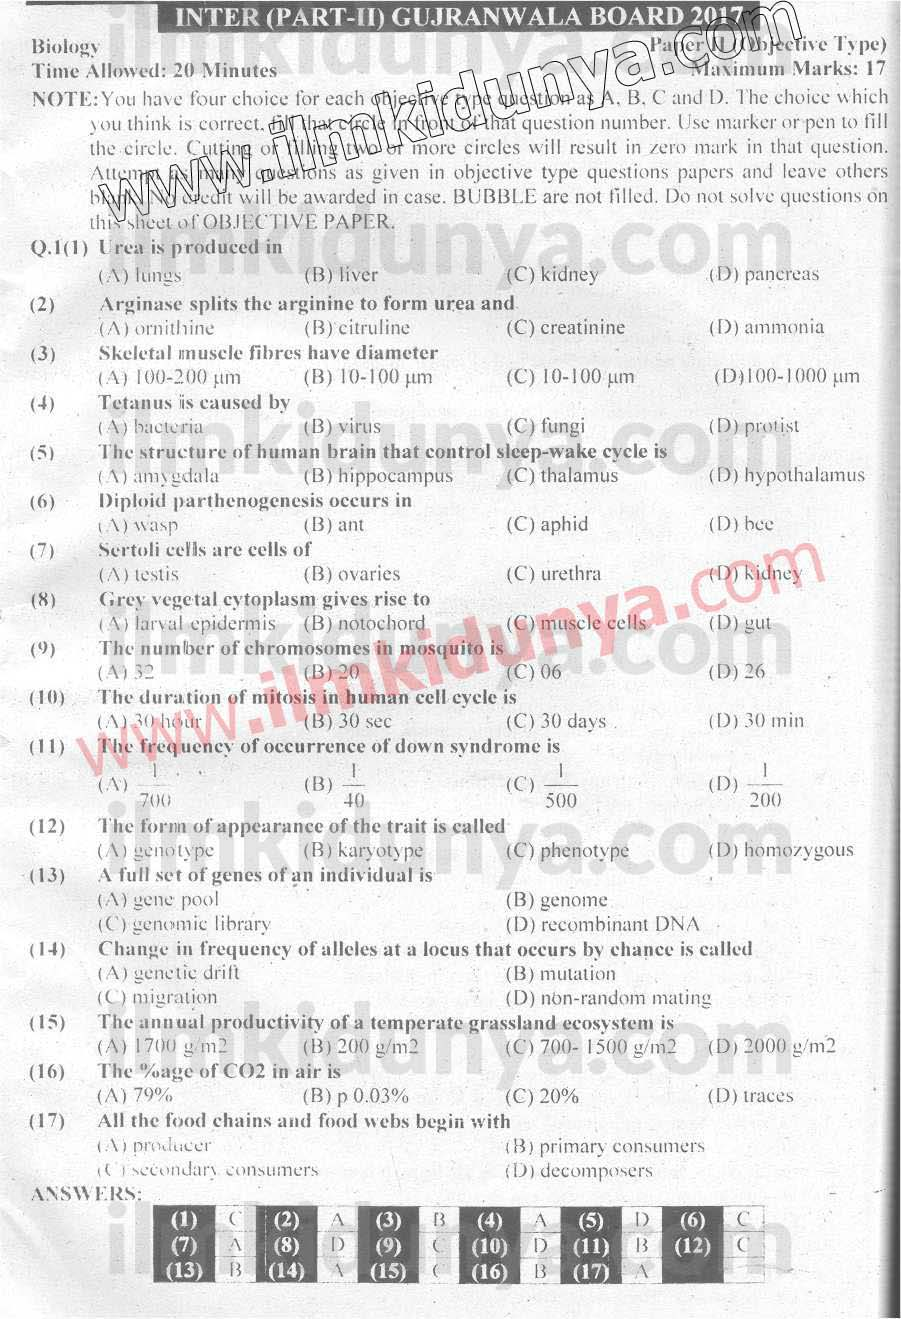 Past Papers 2017 Gujranwala Board F.Sc Part II Biology Not